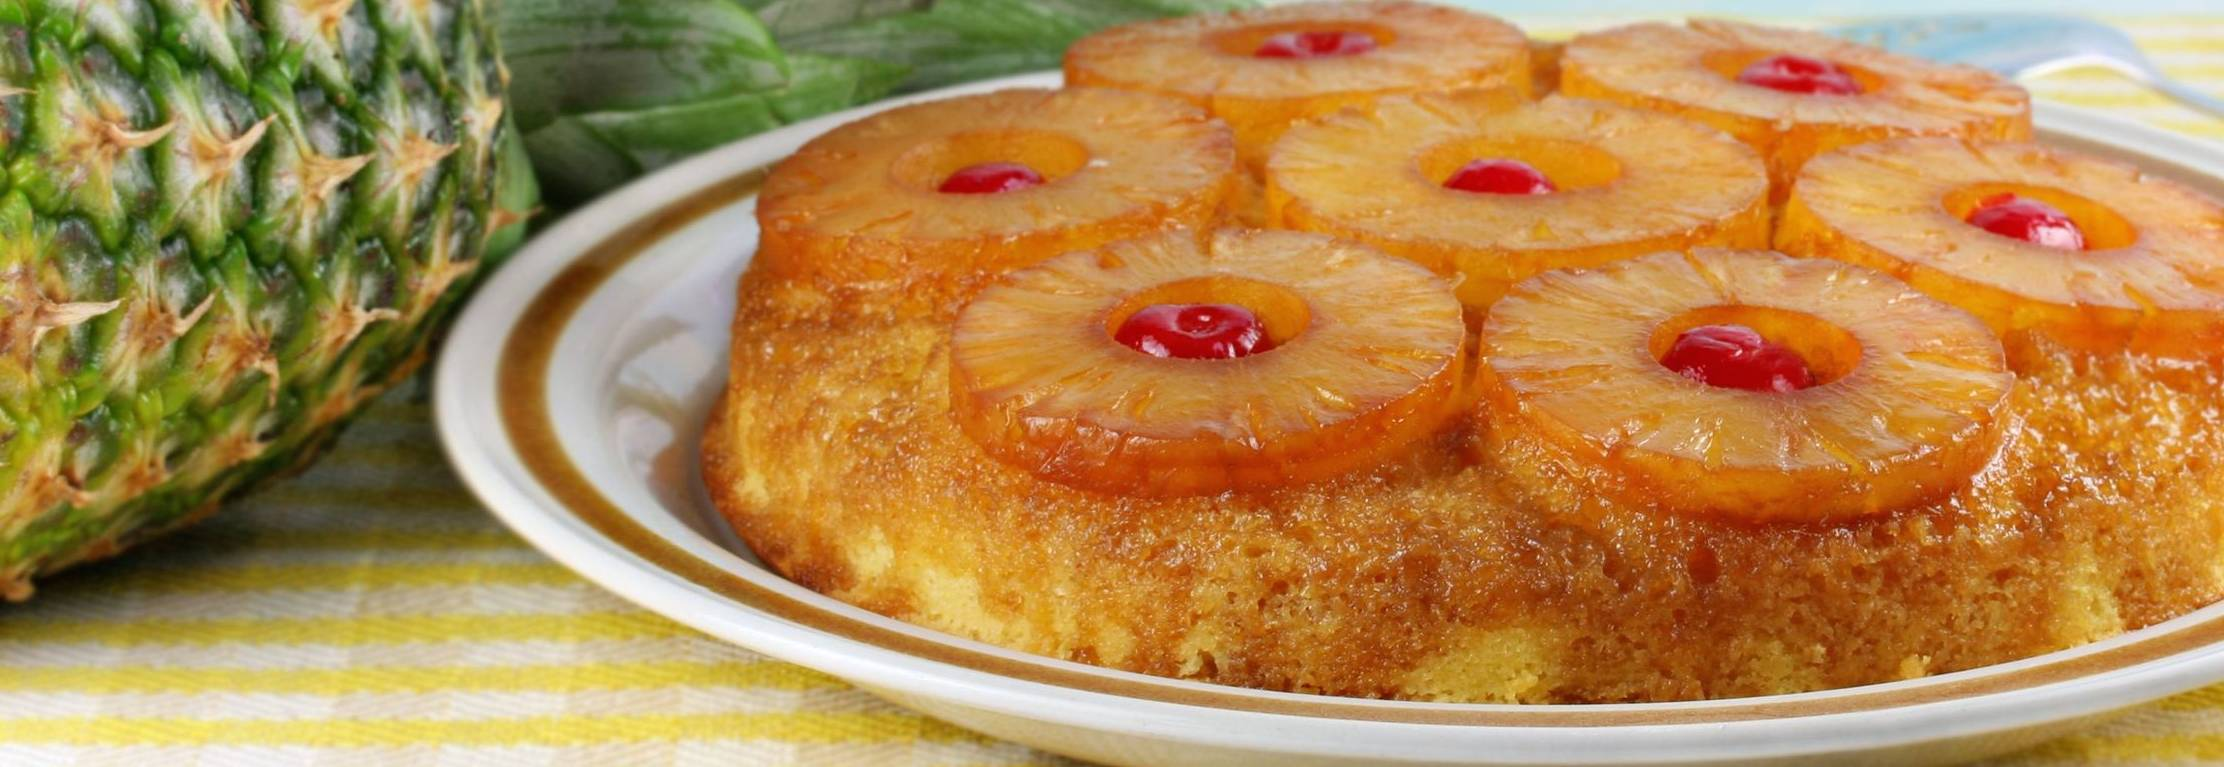 ... Upside Down Cake Eric Wolitzky S Pineapple Upside Down Cake Pineapple